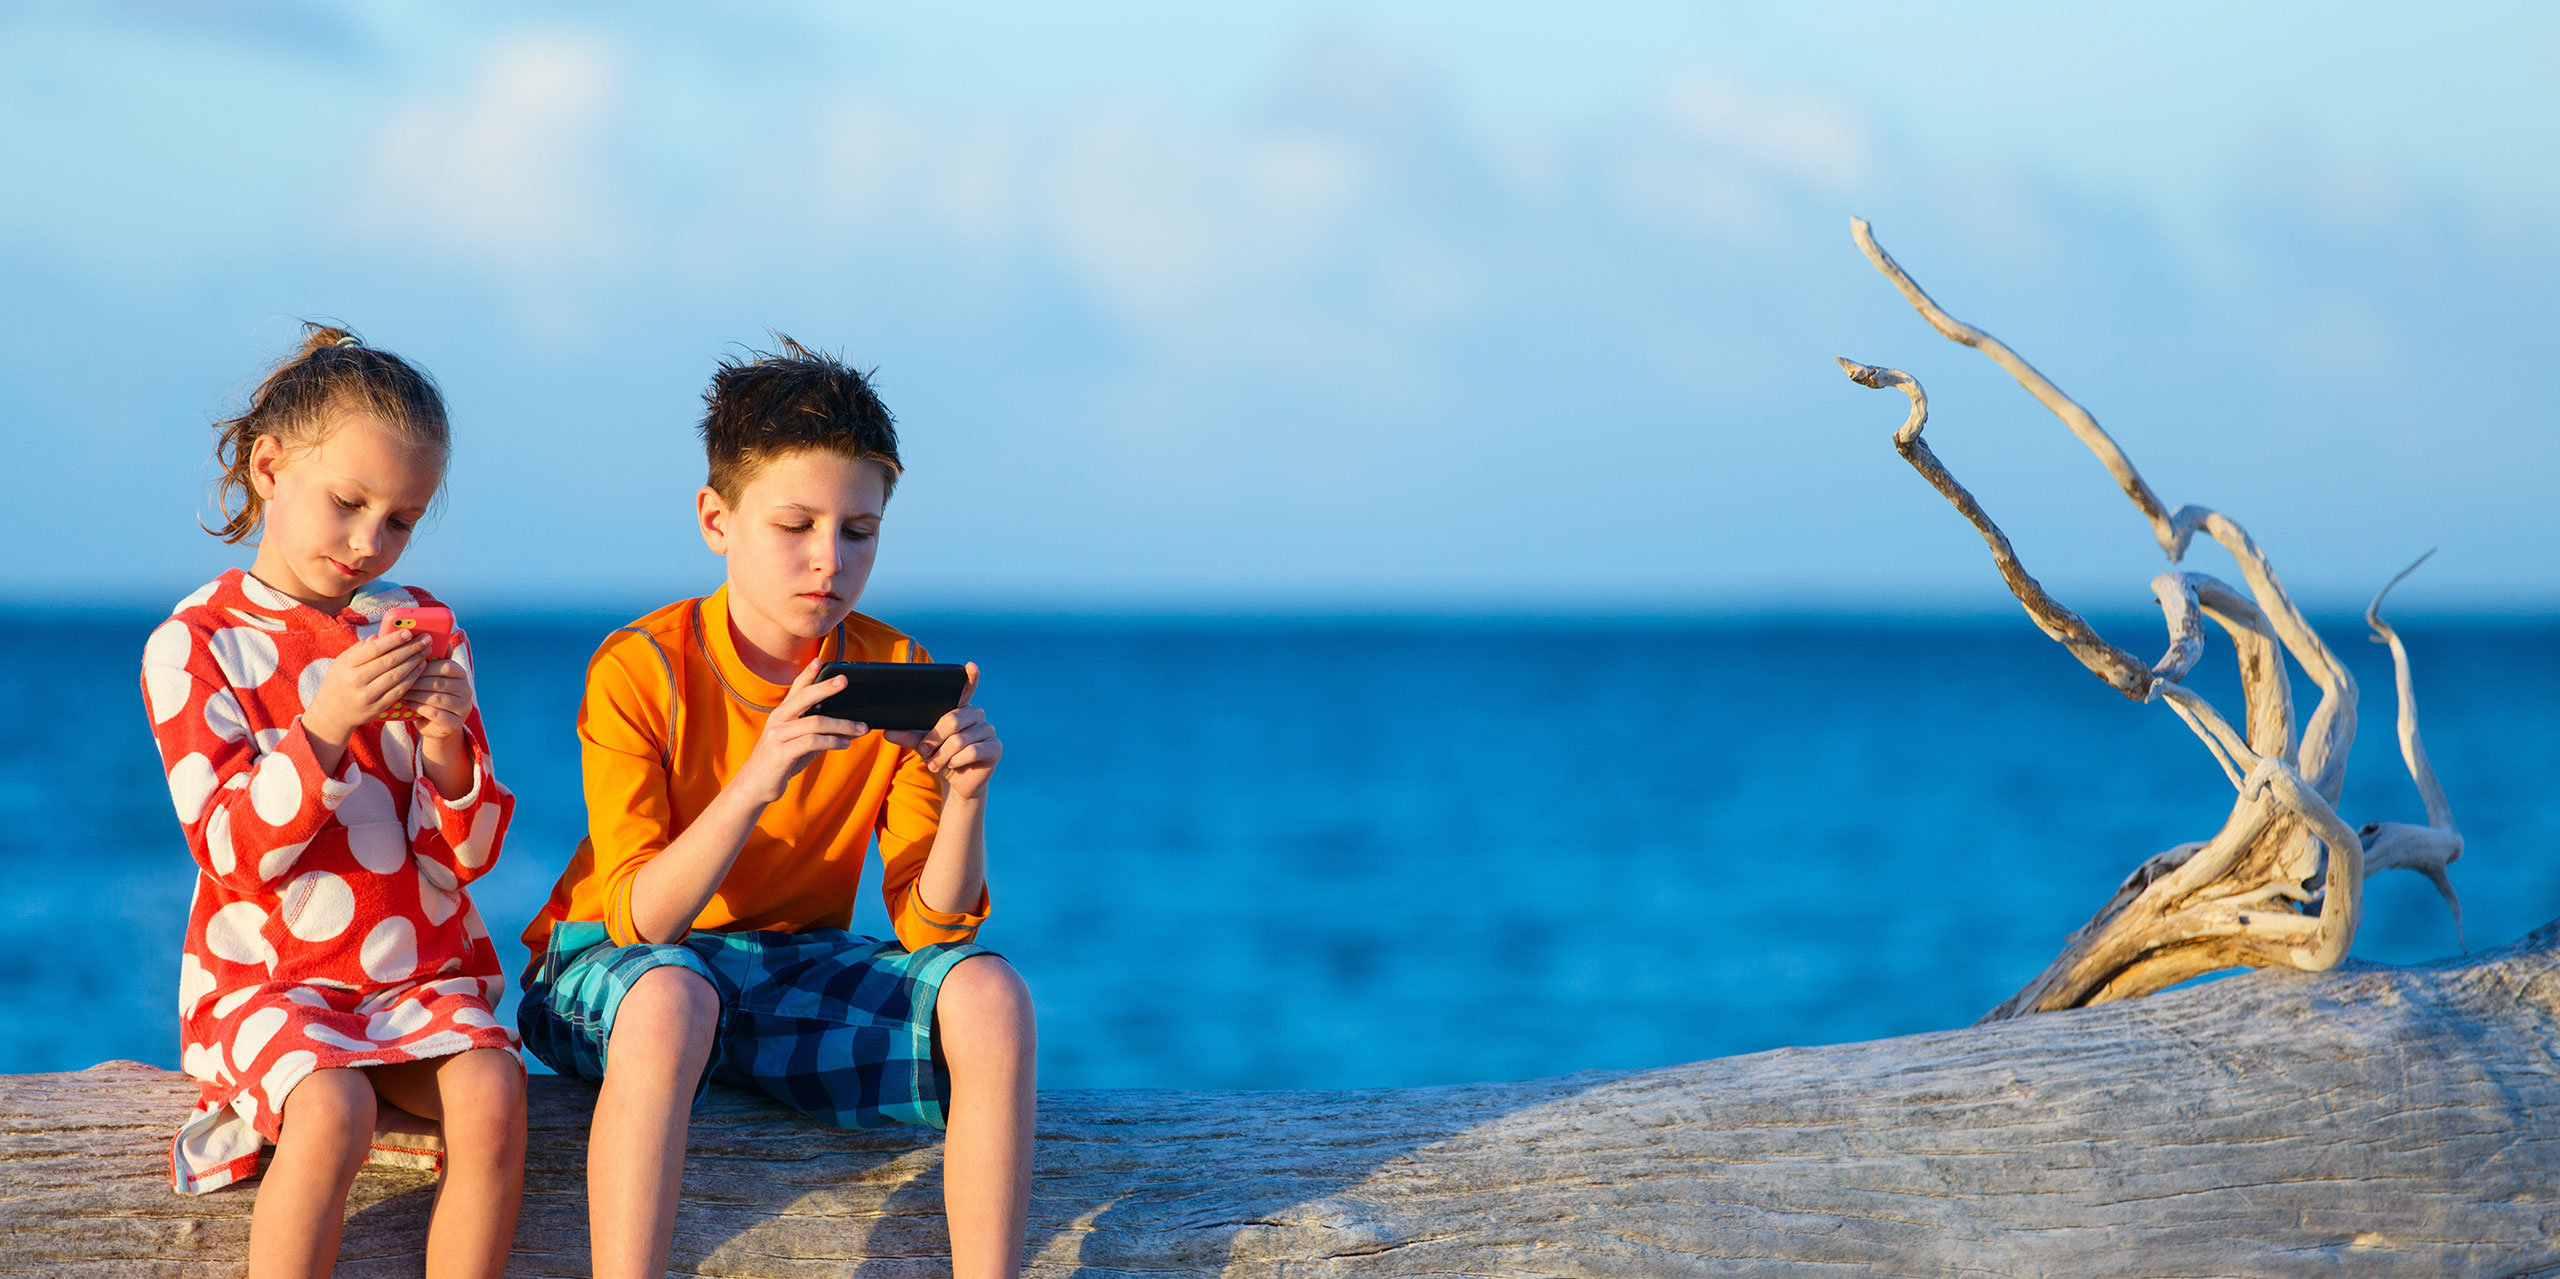 Kids on Smartphones on Beach; Courtesy of BlueOrange Studio/Shutterstock.com